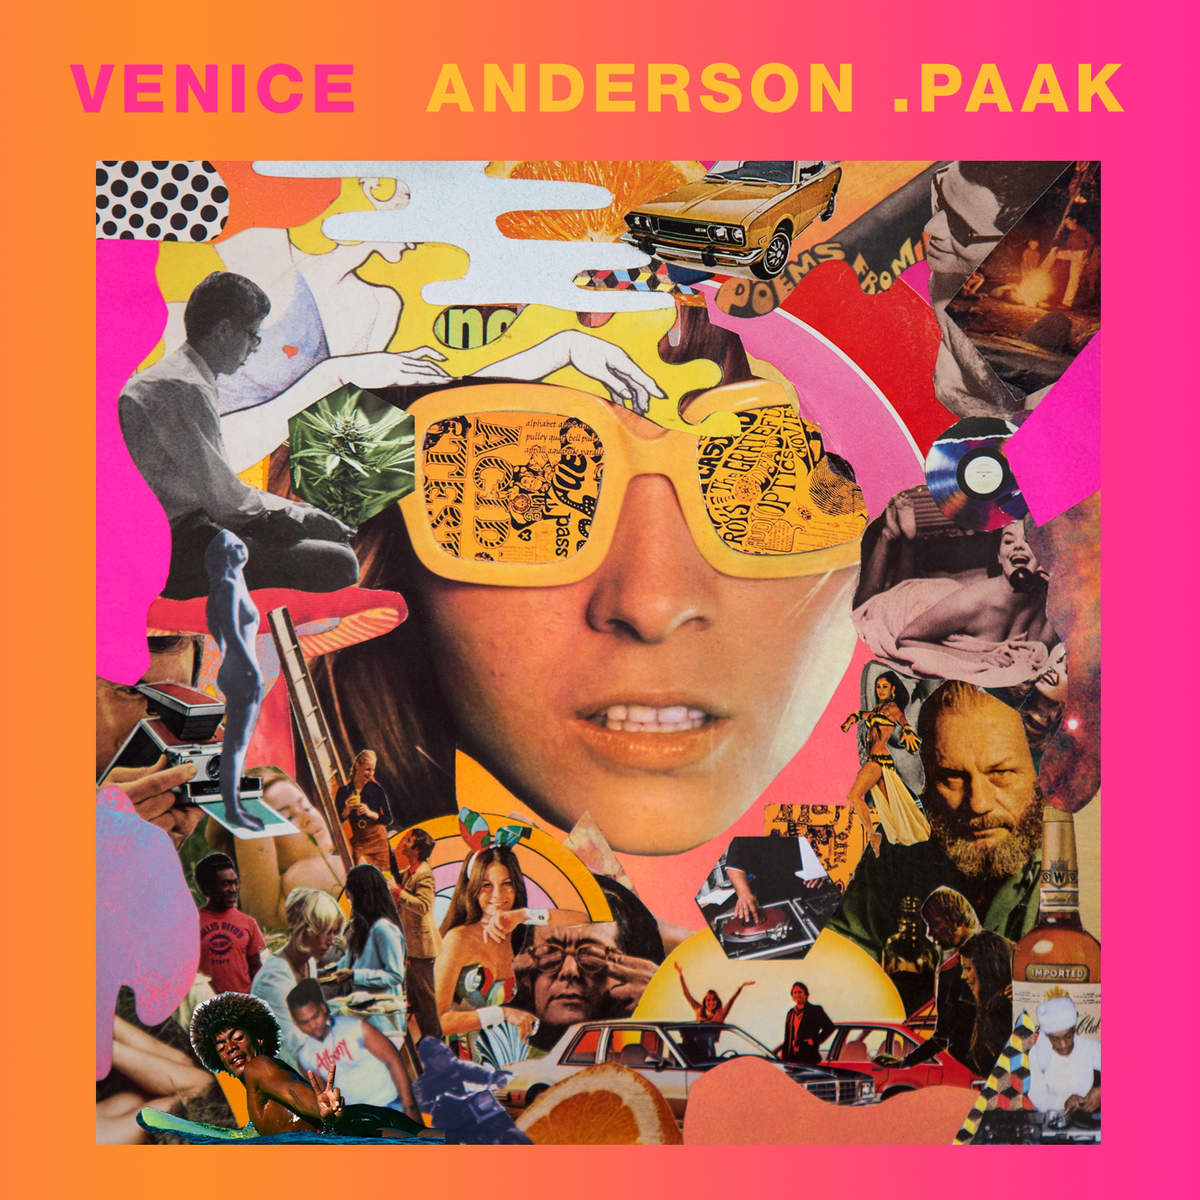 Anderson Paak_Venice_cover1200x1200-11